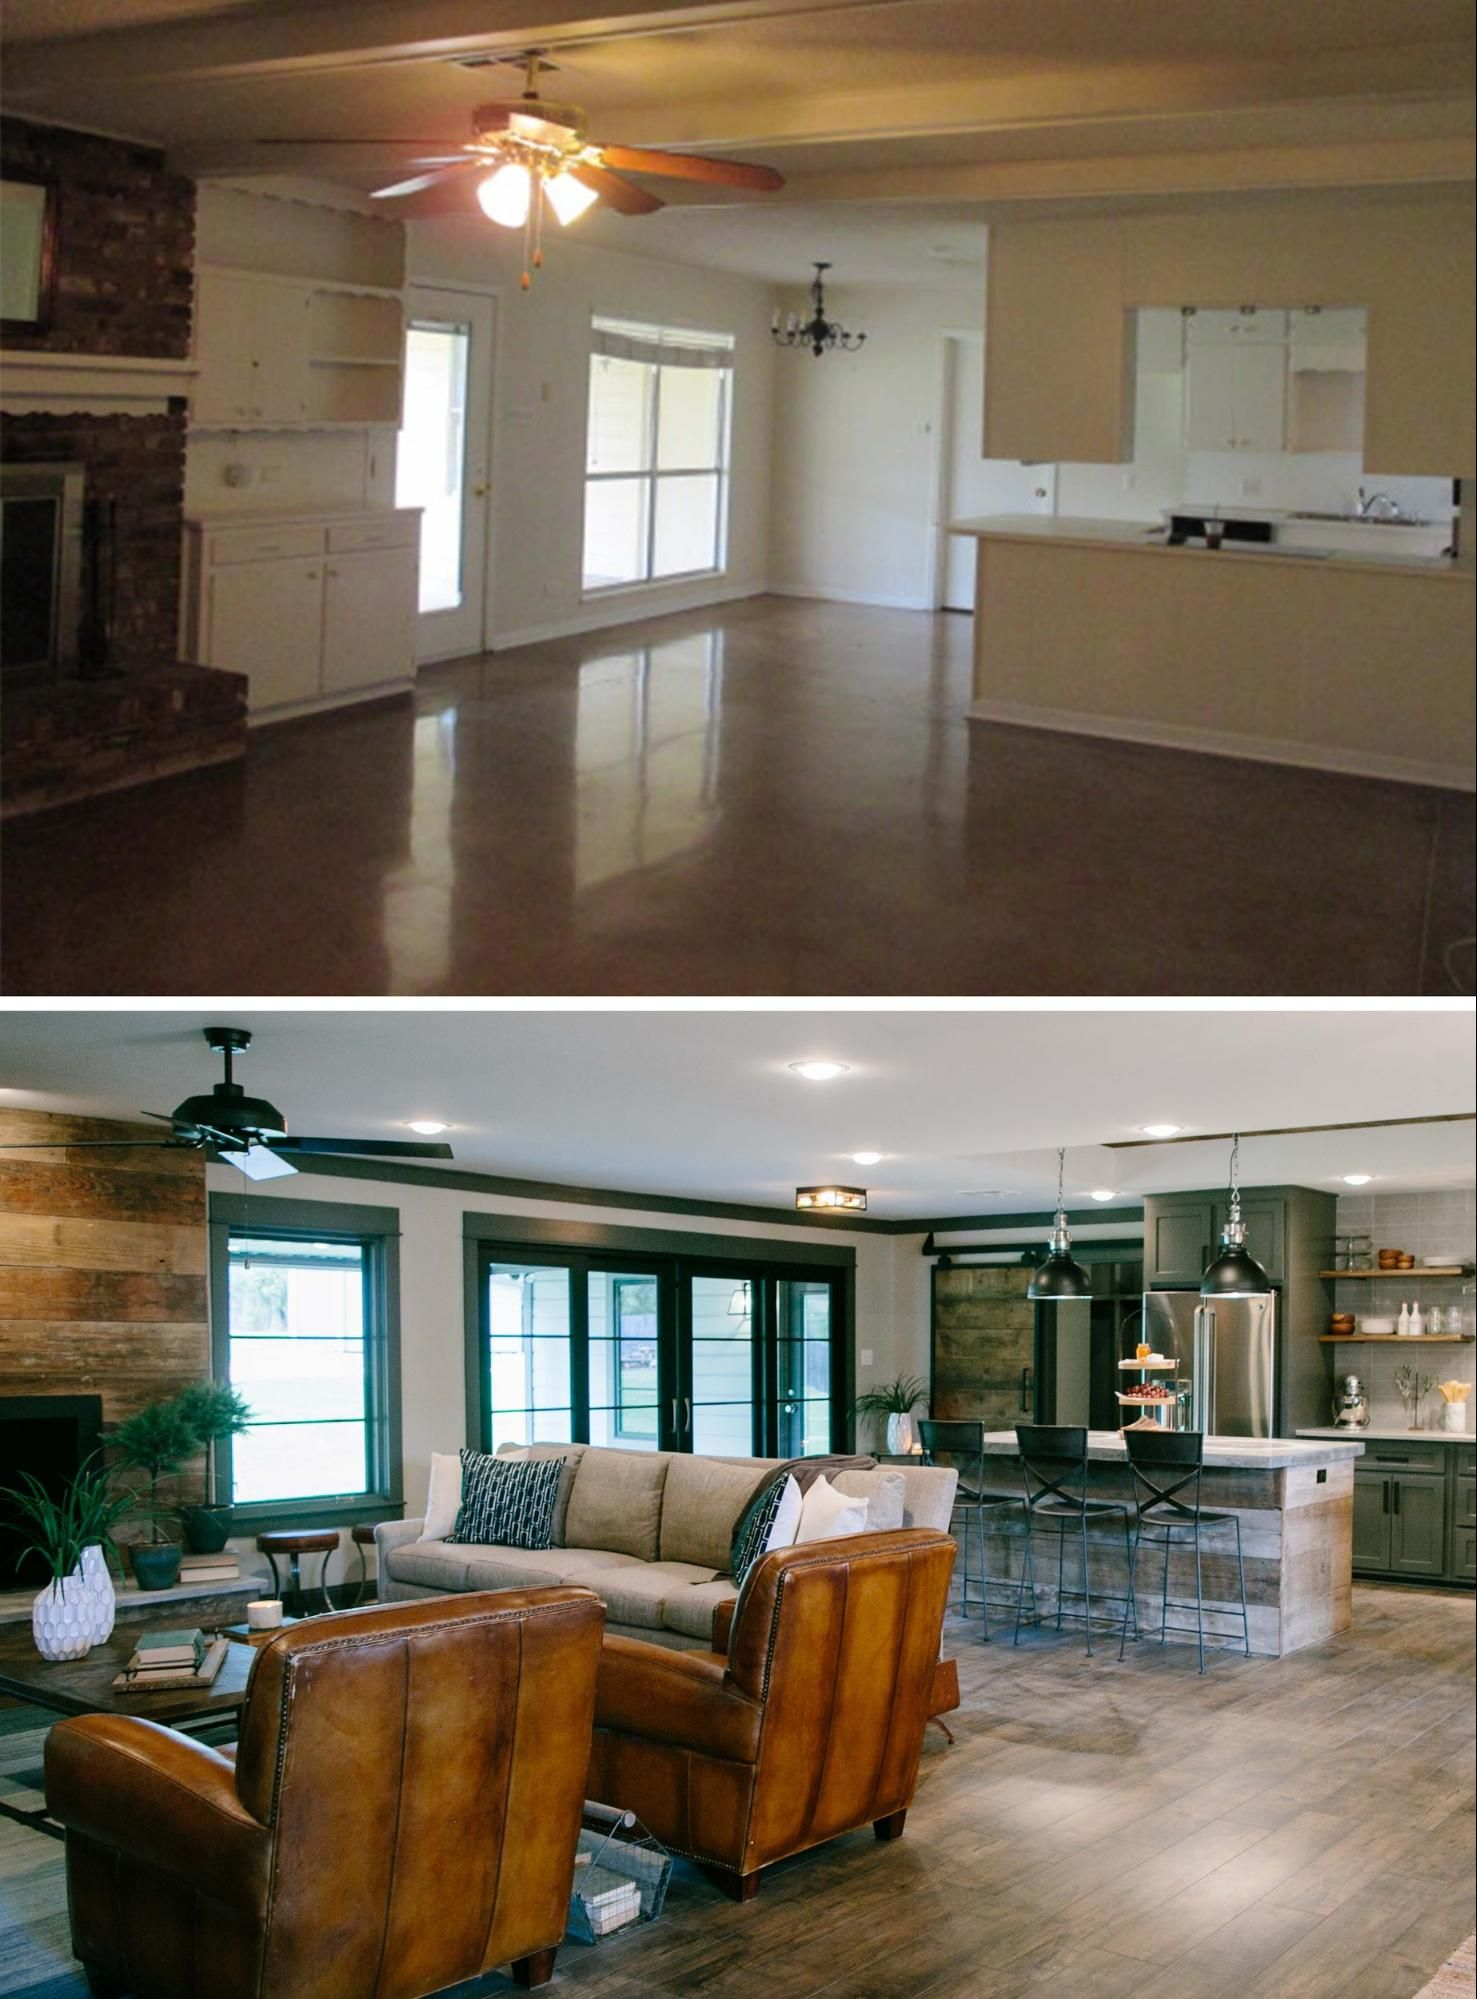 Fixer upper bachelor pad kitchen - Fixer Upper Bachelor Pad Kitchen 0